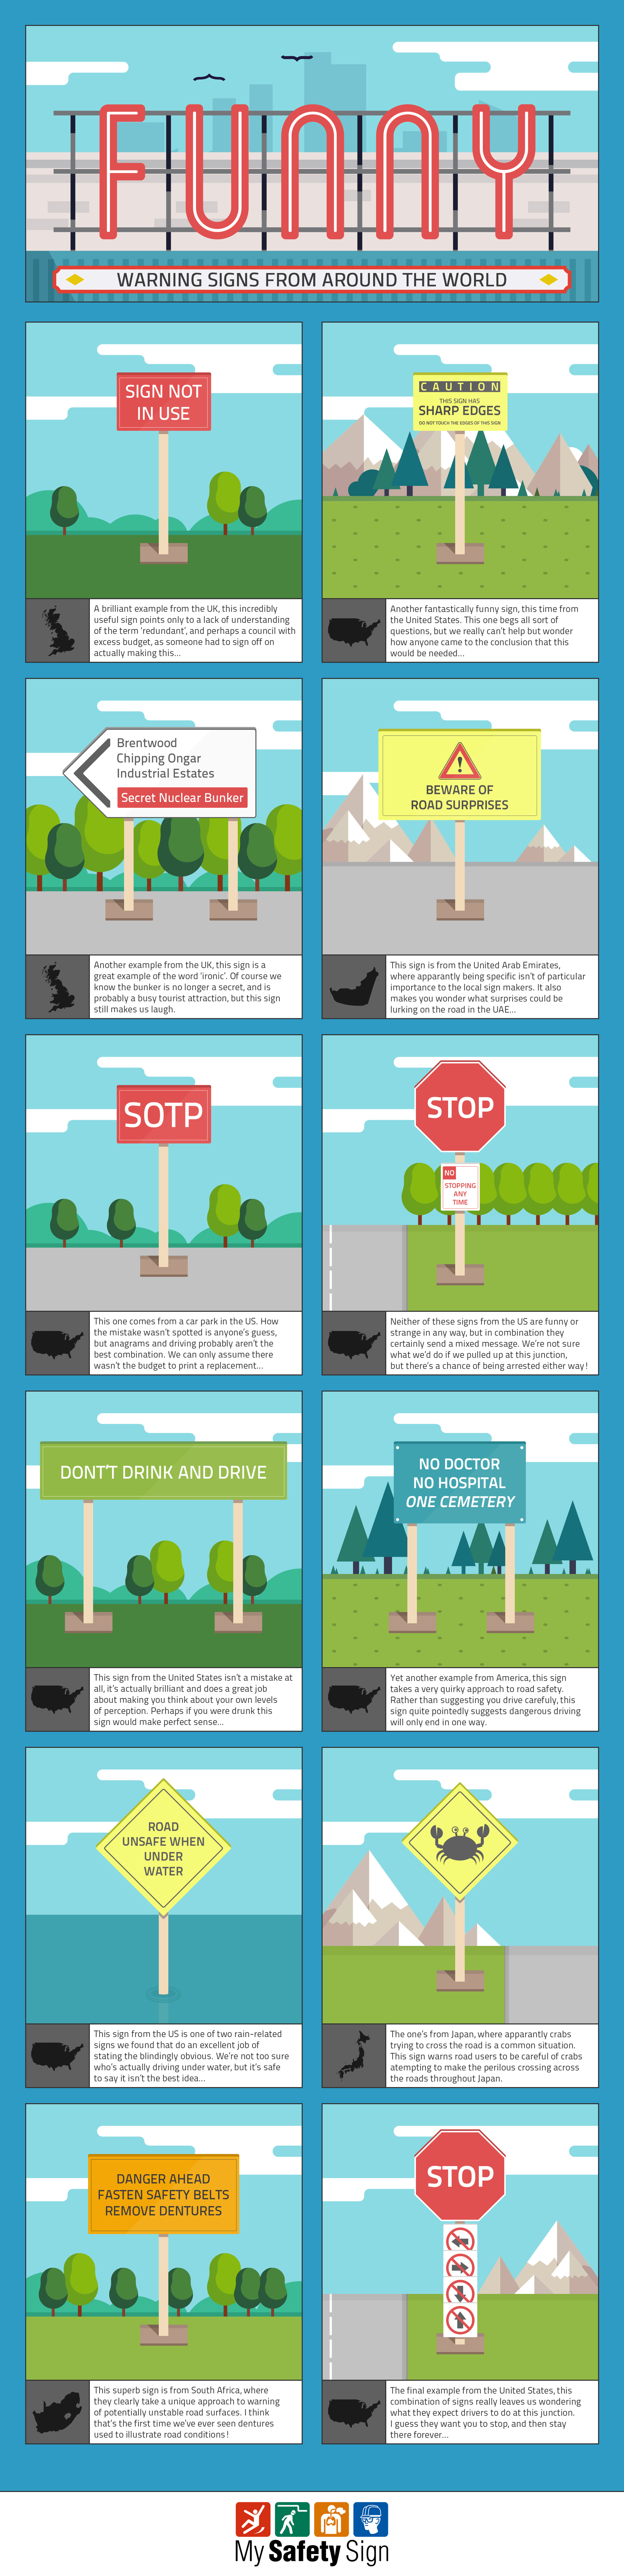 funny-warning-and-safety-signs-infographic